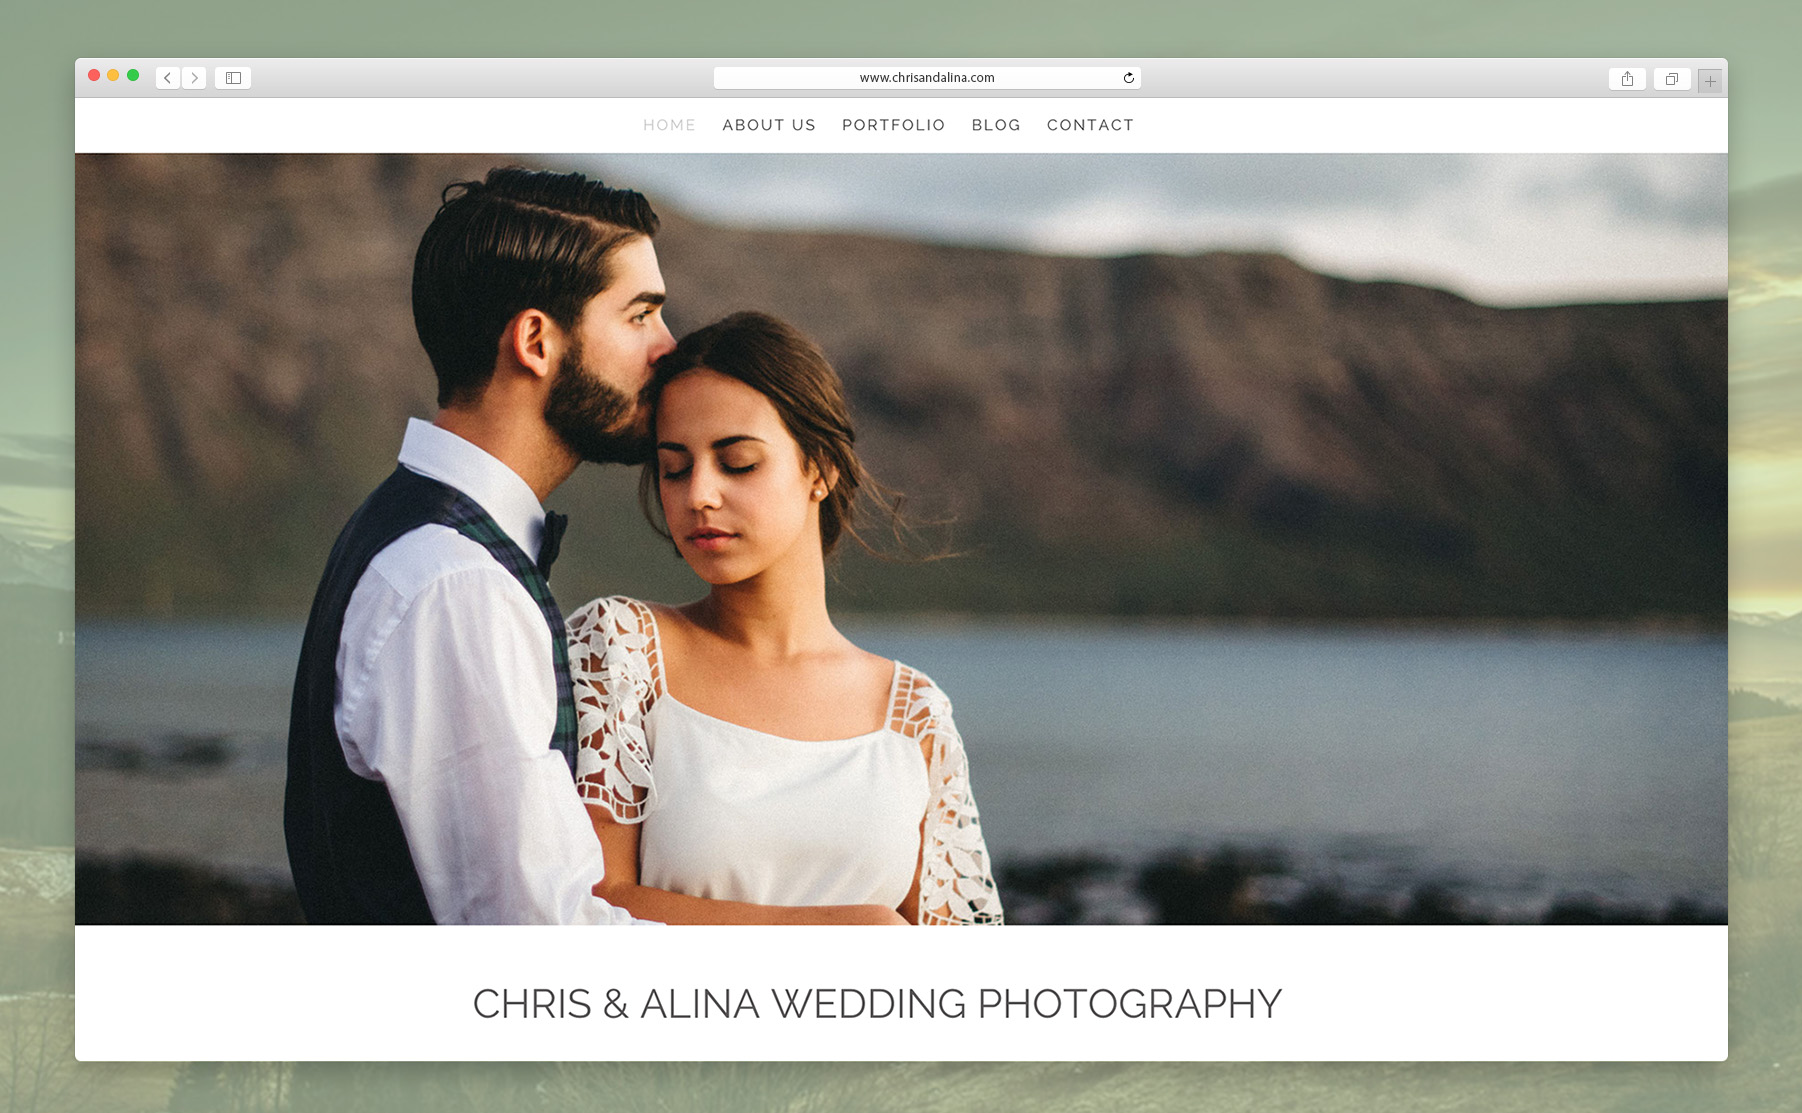 This is Chris and Alina's website.